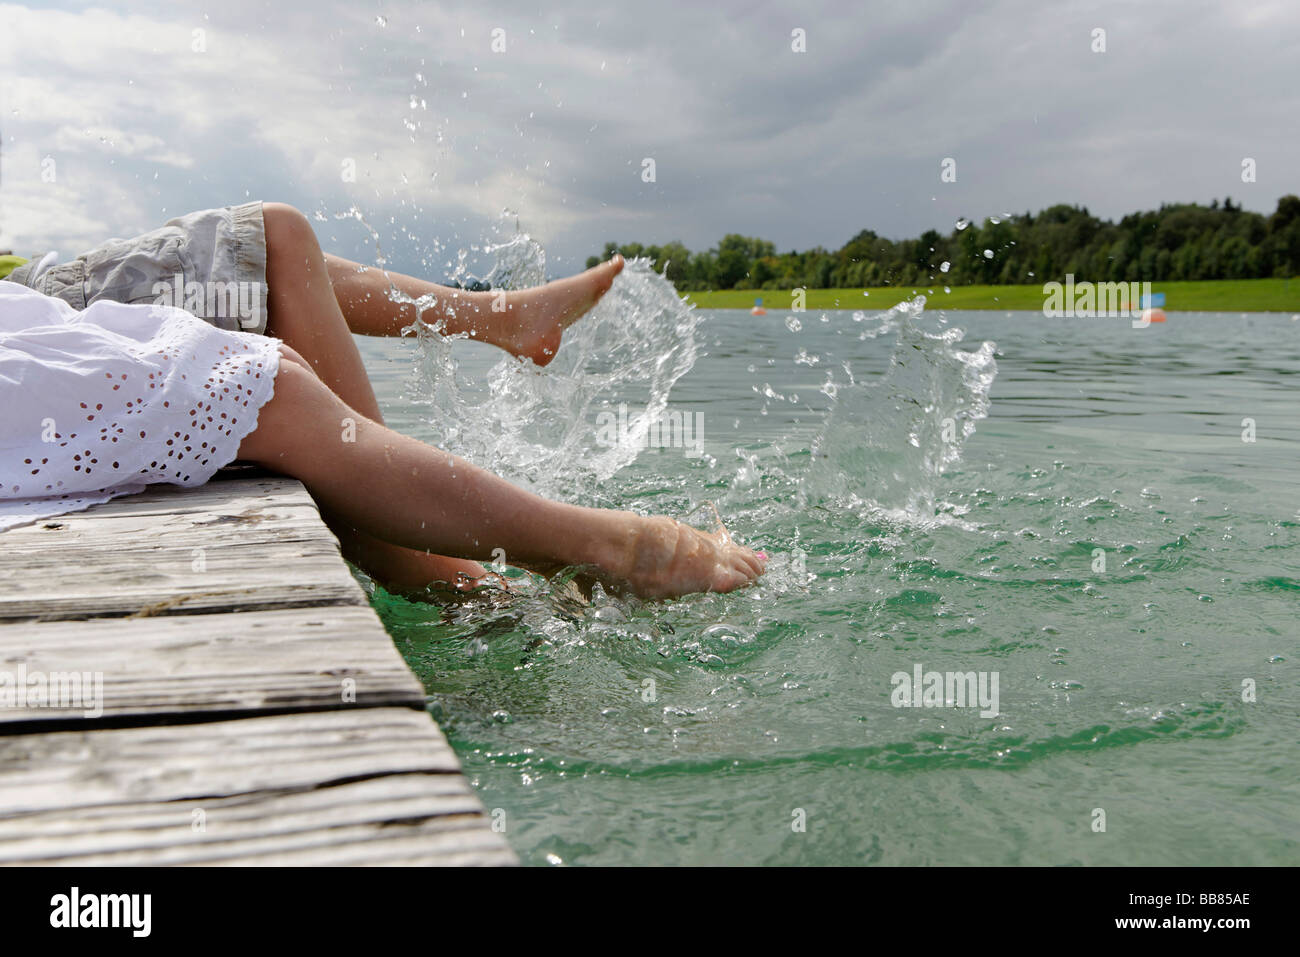 Regatta area for Rowing races, Olympic games 1972, Oberschleissheim, Munich, Upper Bavaria, Germany, Europe - Stock Image